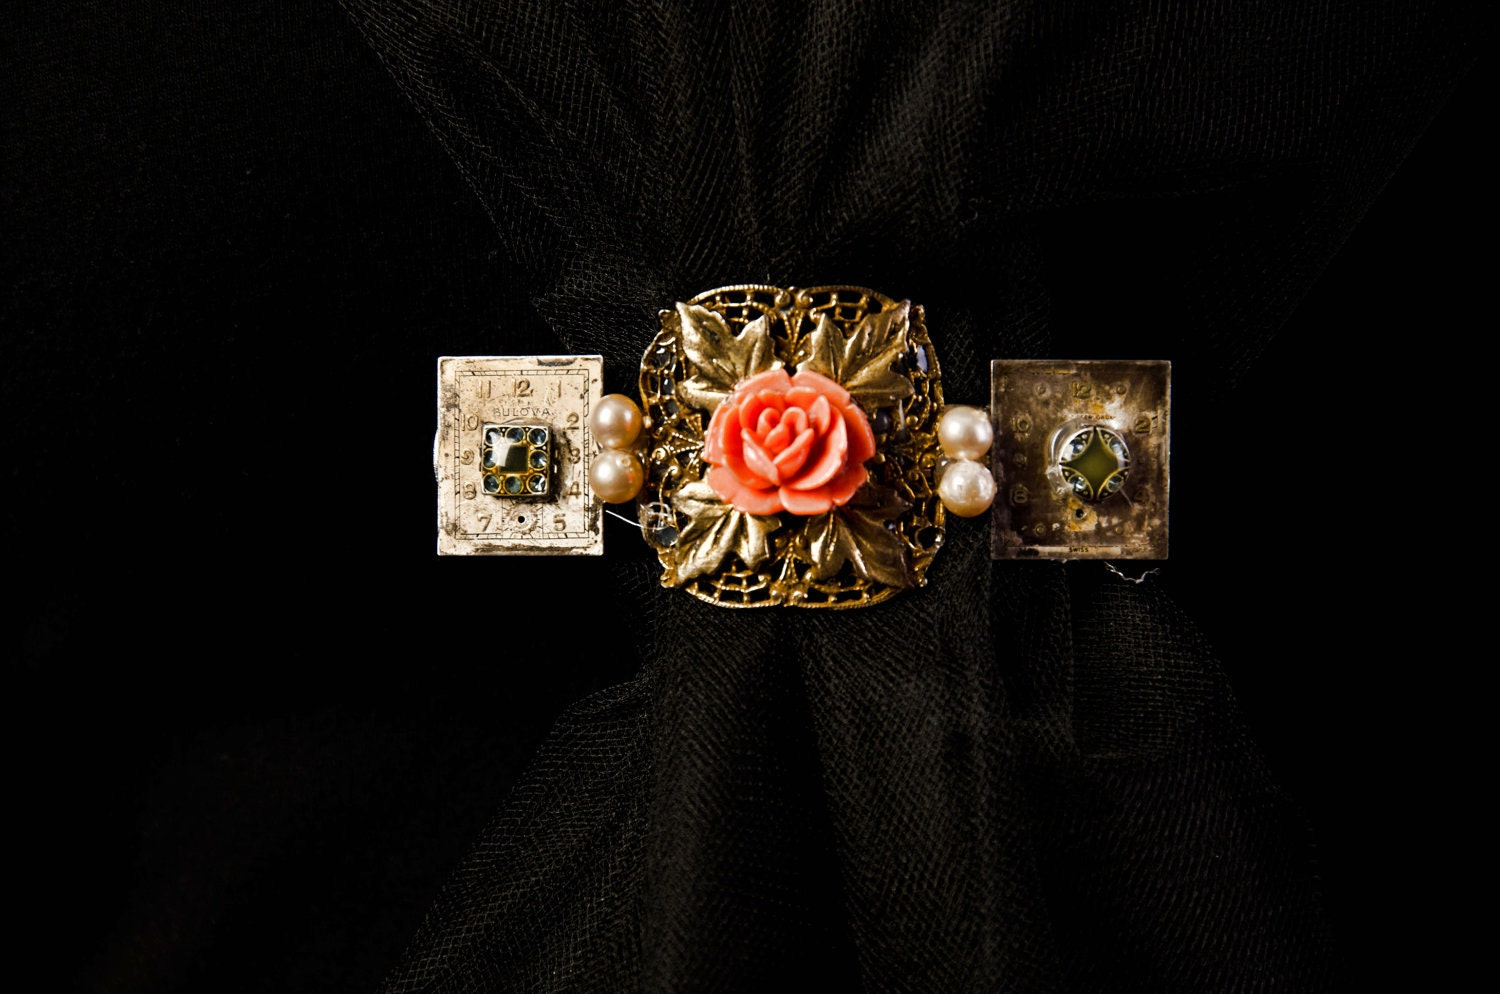 pearl, coral rose, cabochon, and watch dial Victorian inspired barrette